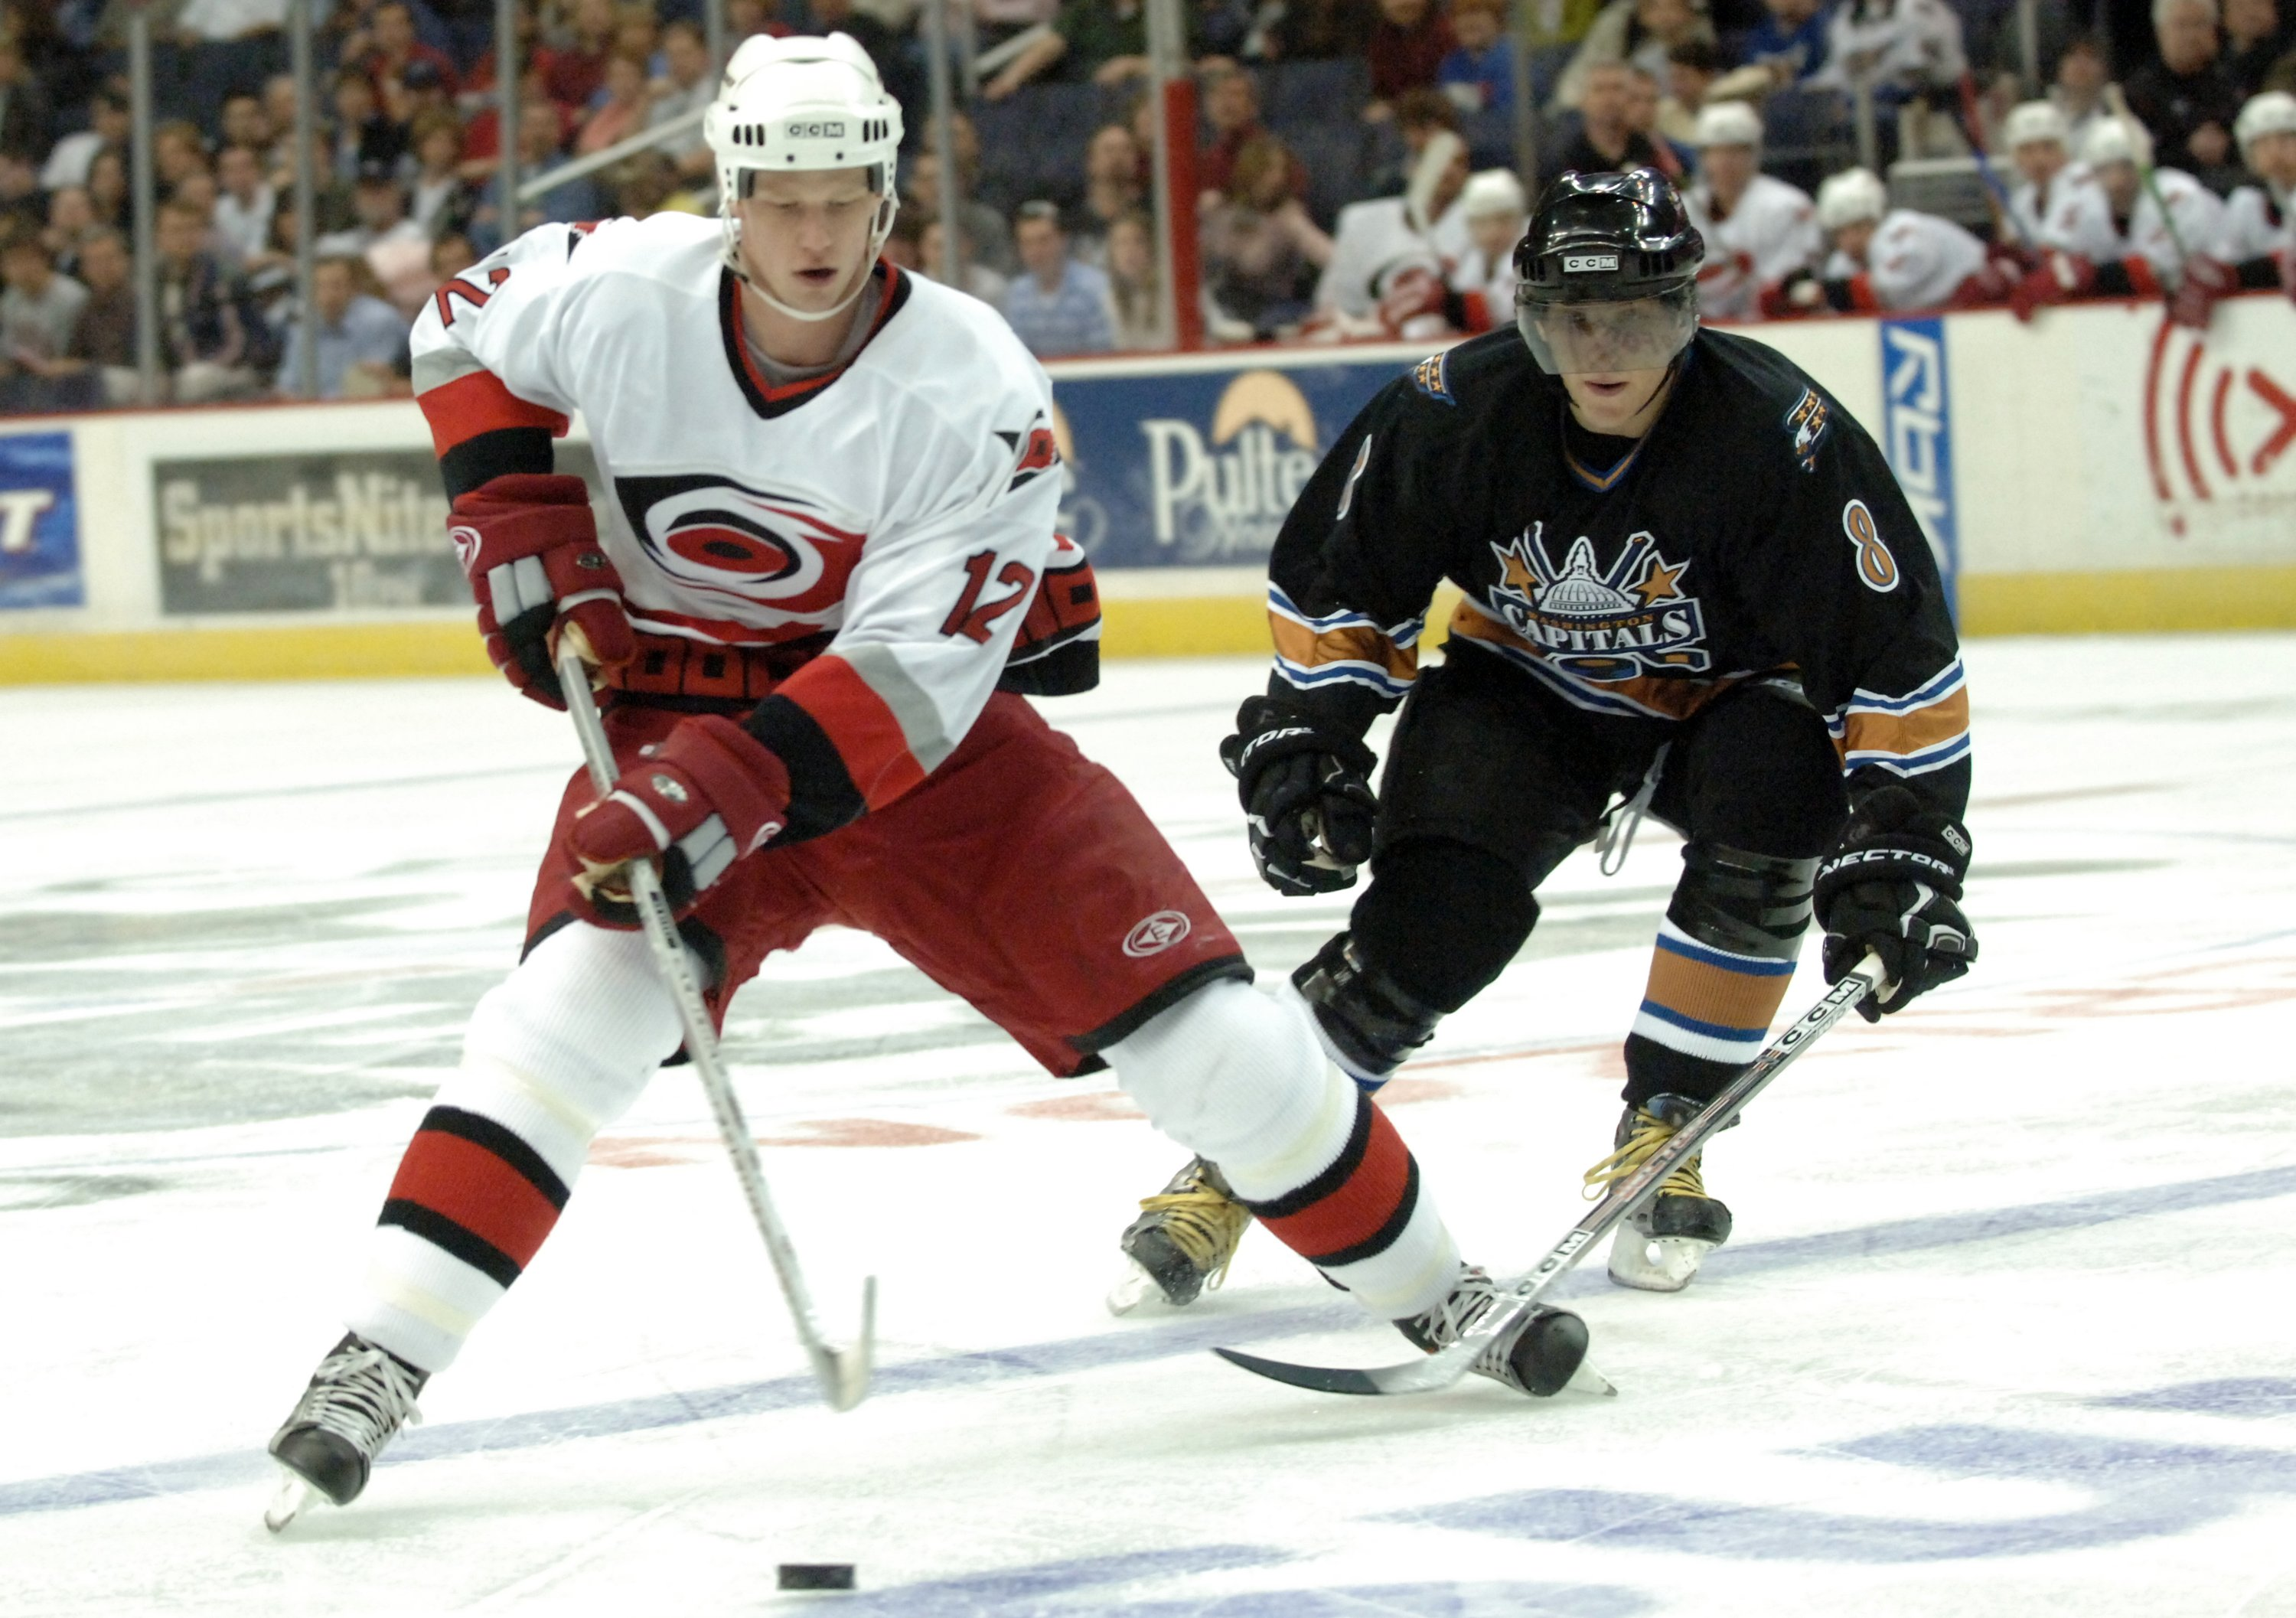 The Carolina Hurricanes' Eric Staal is shown during a game against the Washington Captials at the Verizon Center on Friday, April 7, 2006.